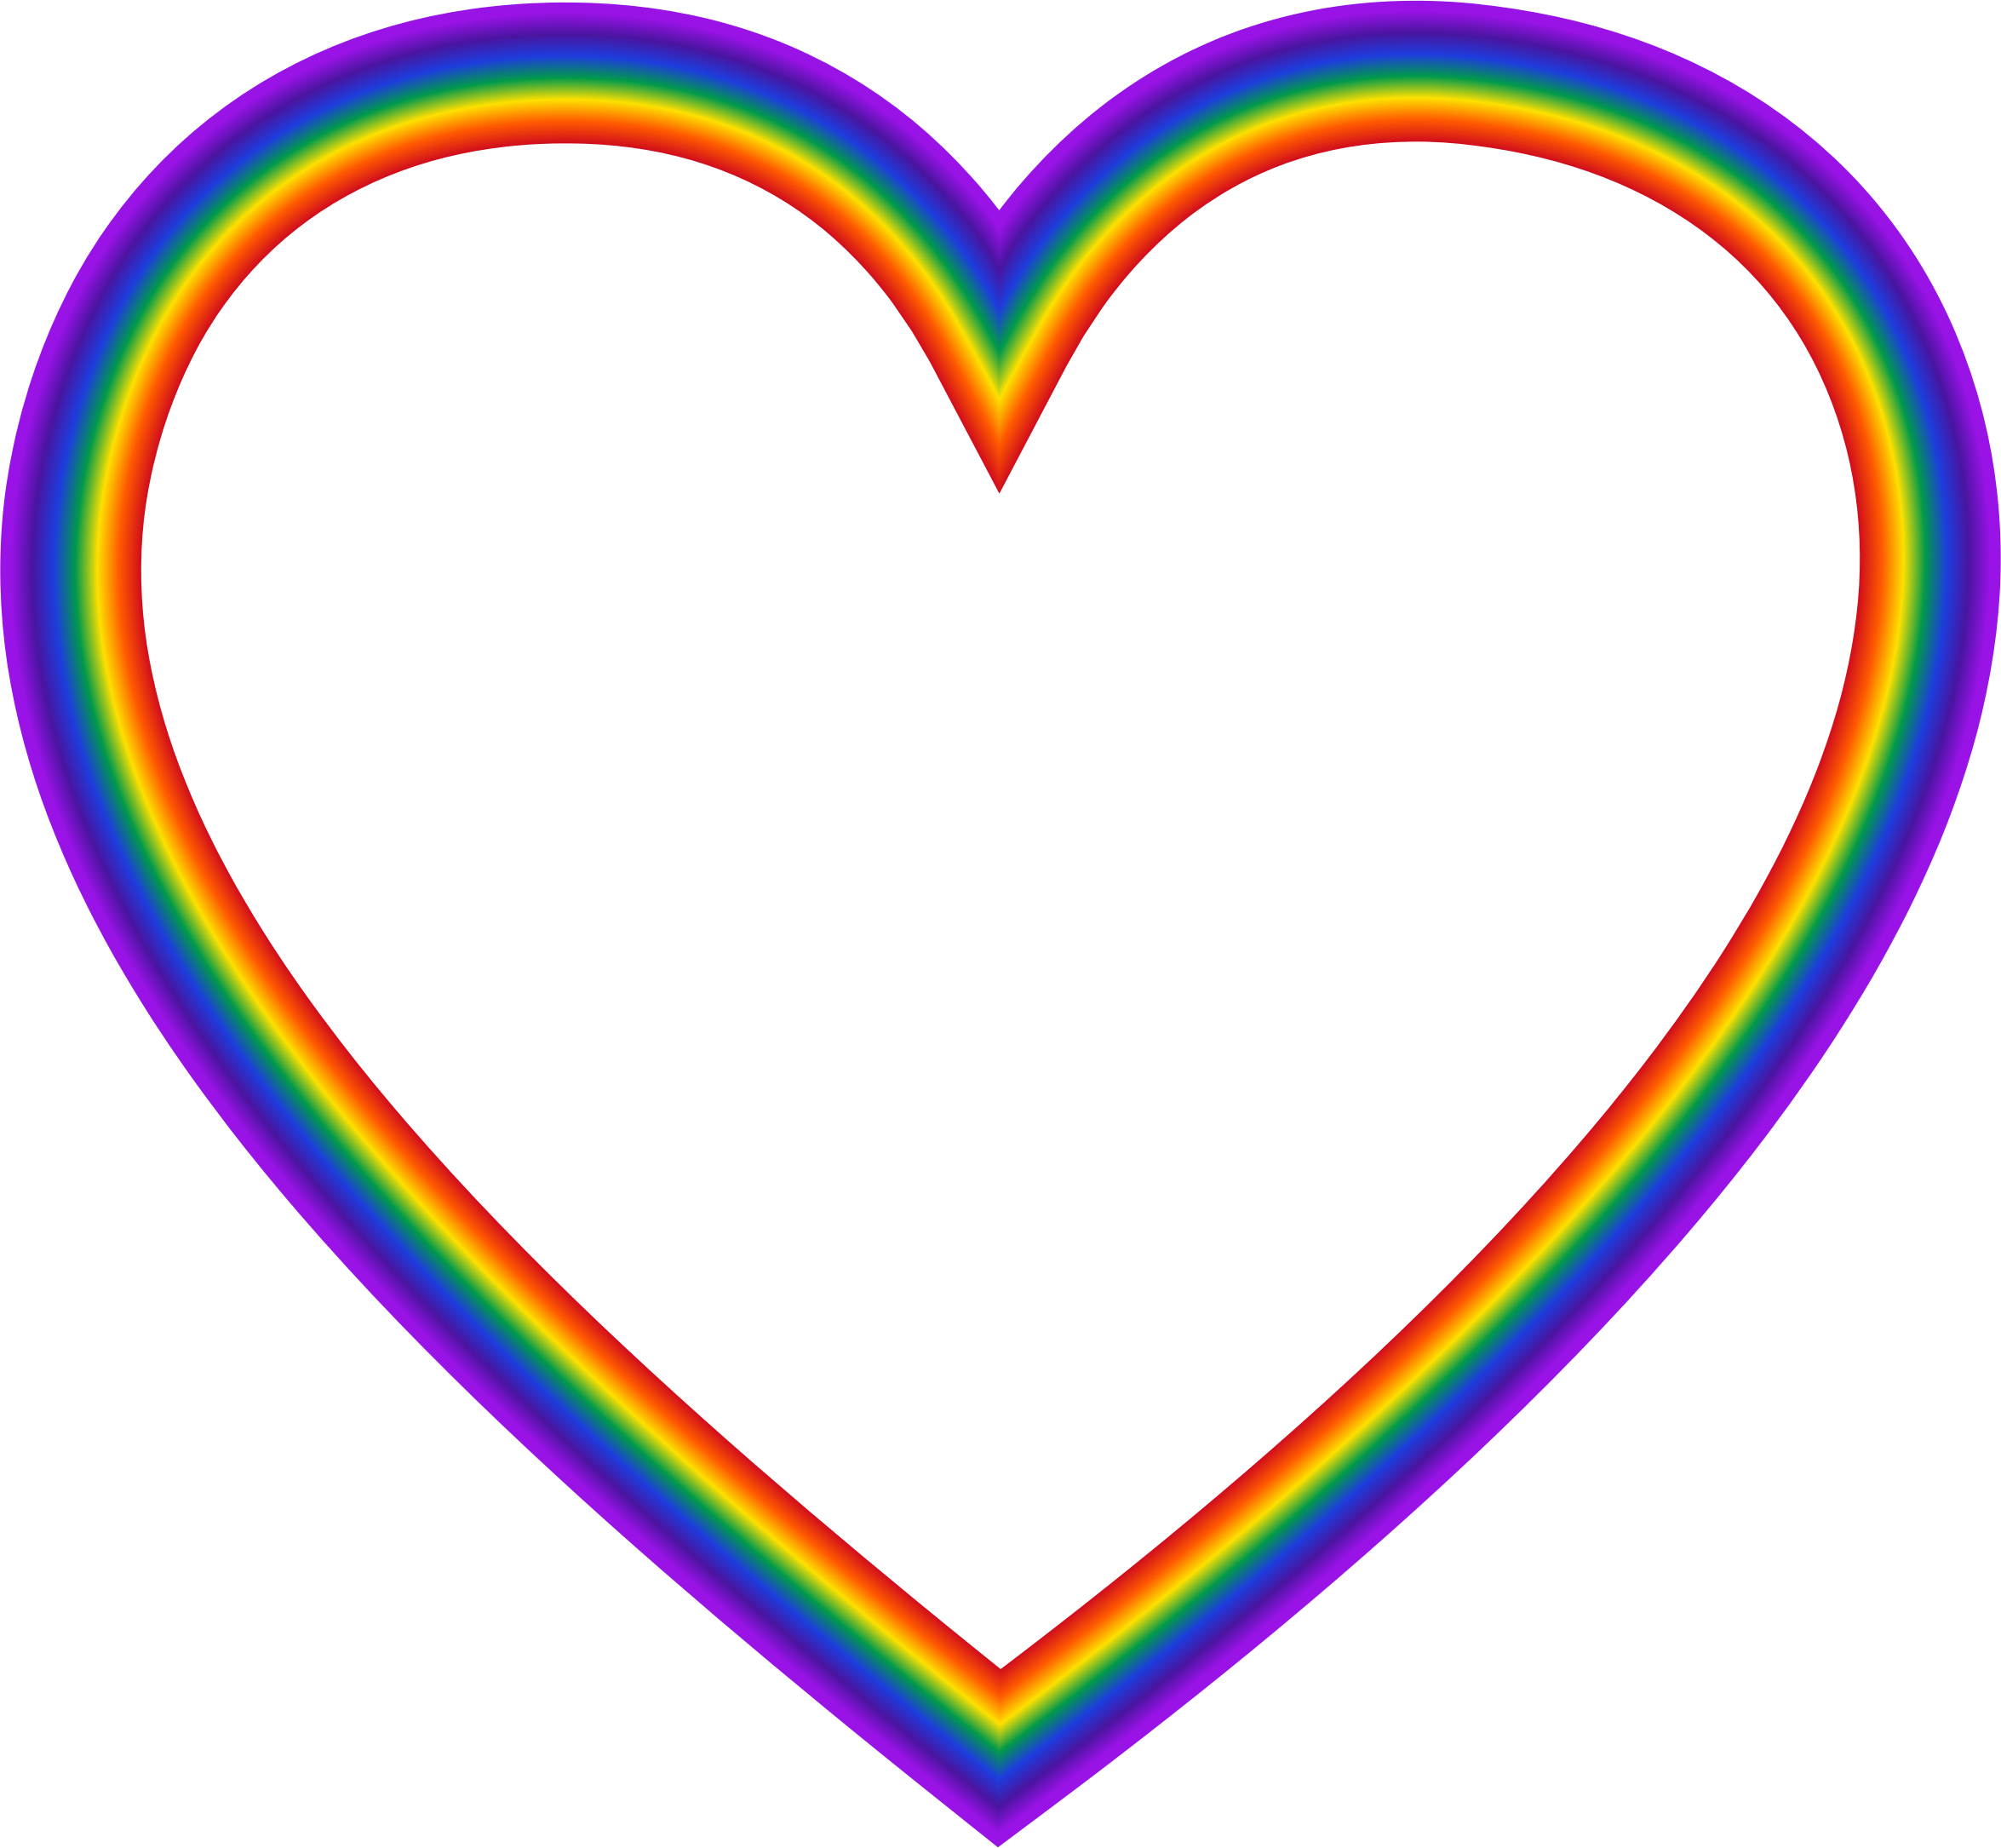 Clipart heart big image. Rainbow hearts png